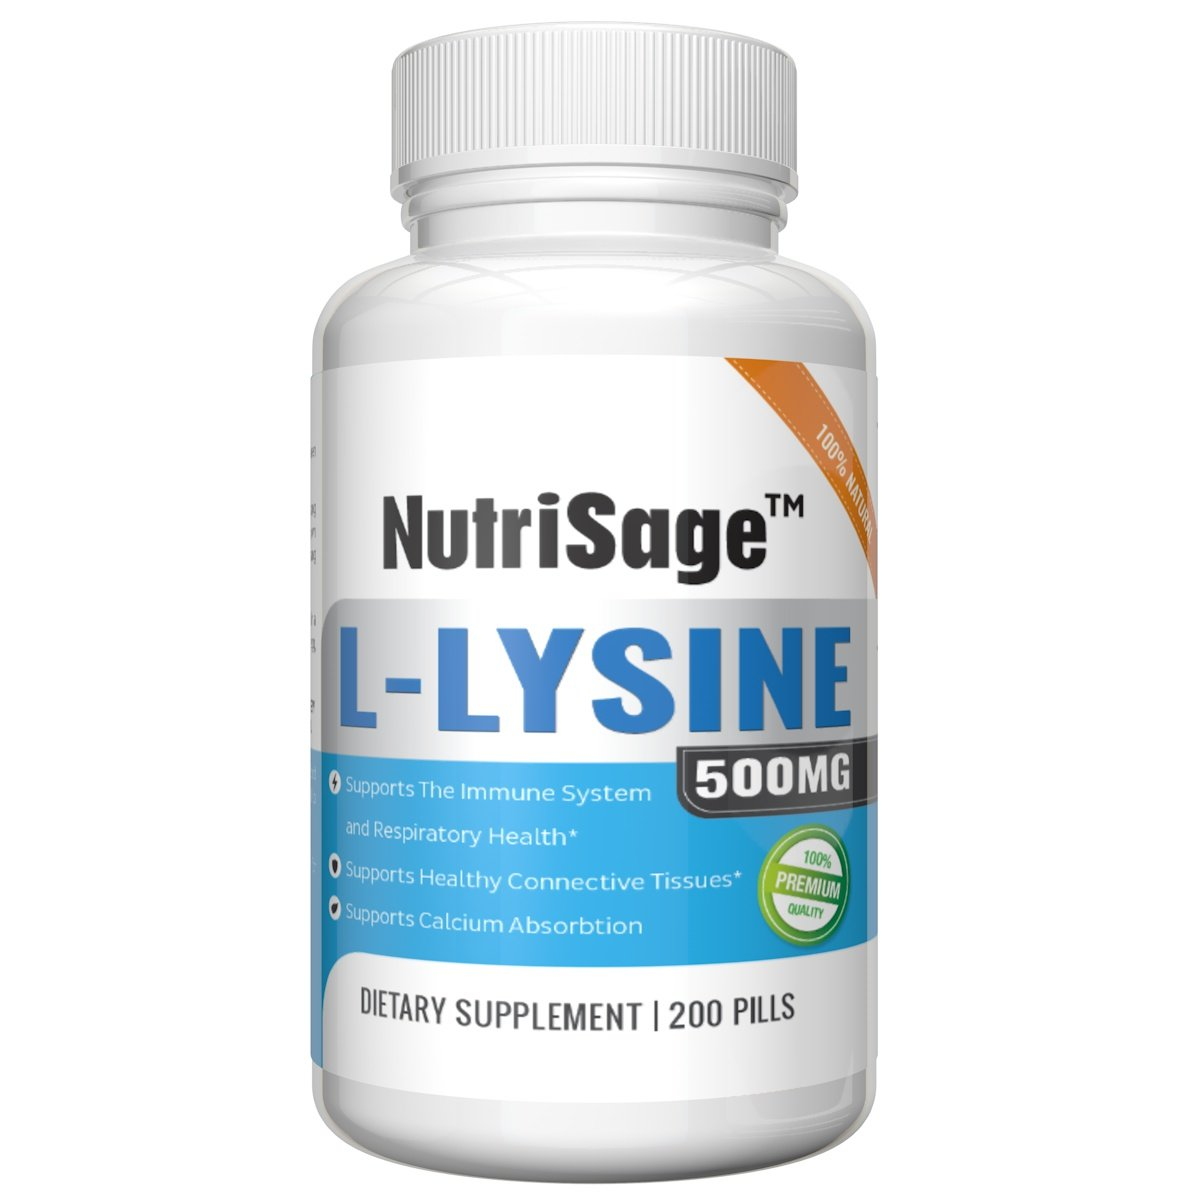 Premium Super L Lysine - 500mg Amino Acid Tablets For Cold Sore Care, Shingles, Immune Support & More - 200 Count Per Bottle by NutriSage (Image #2)